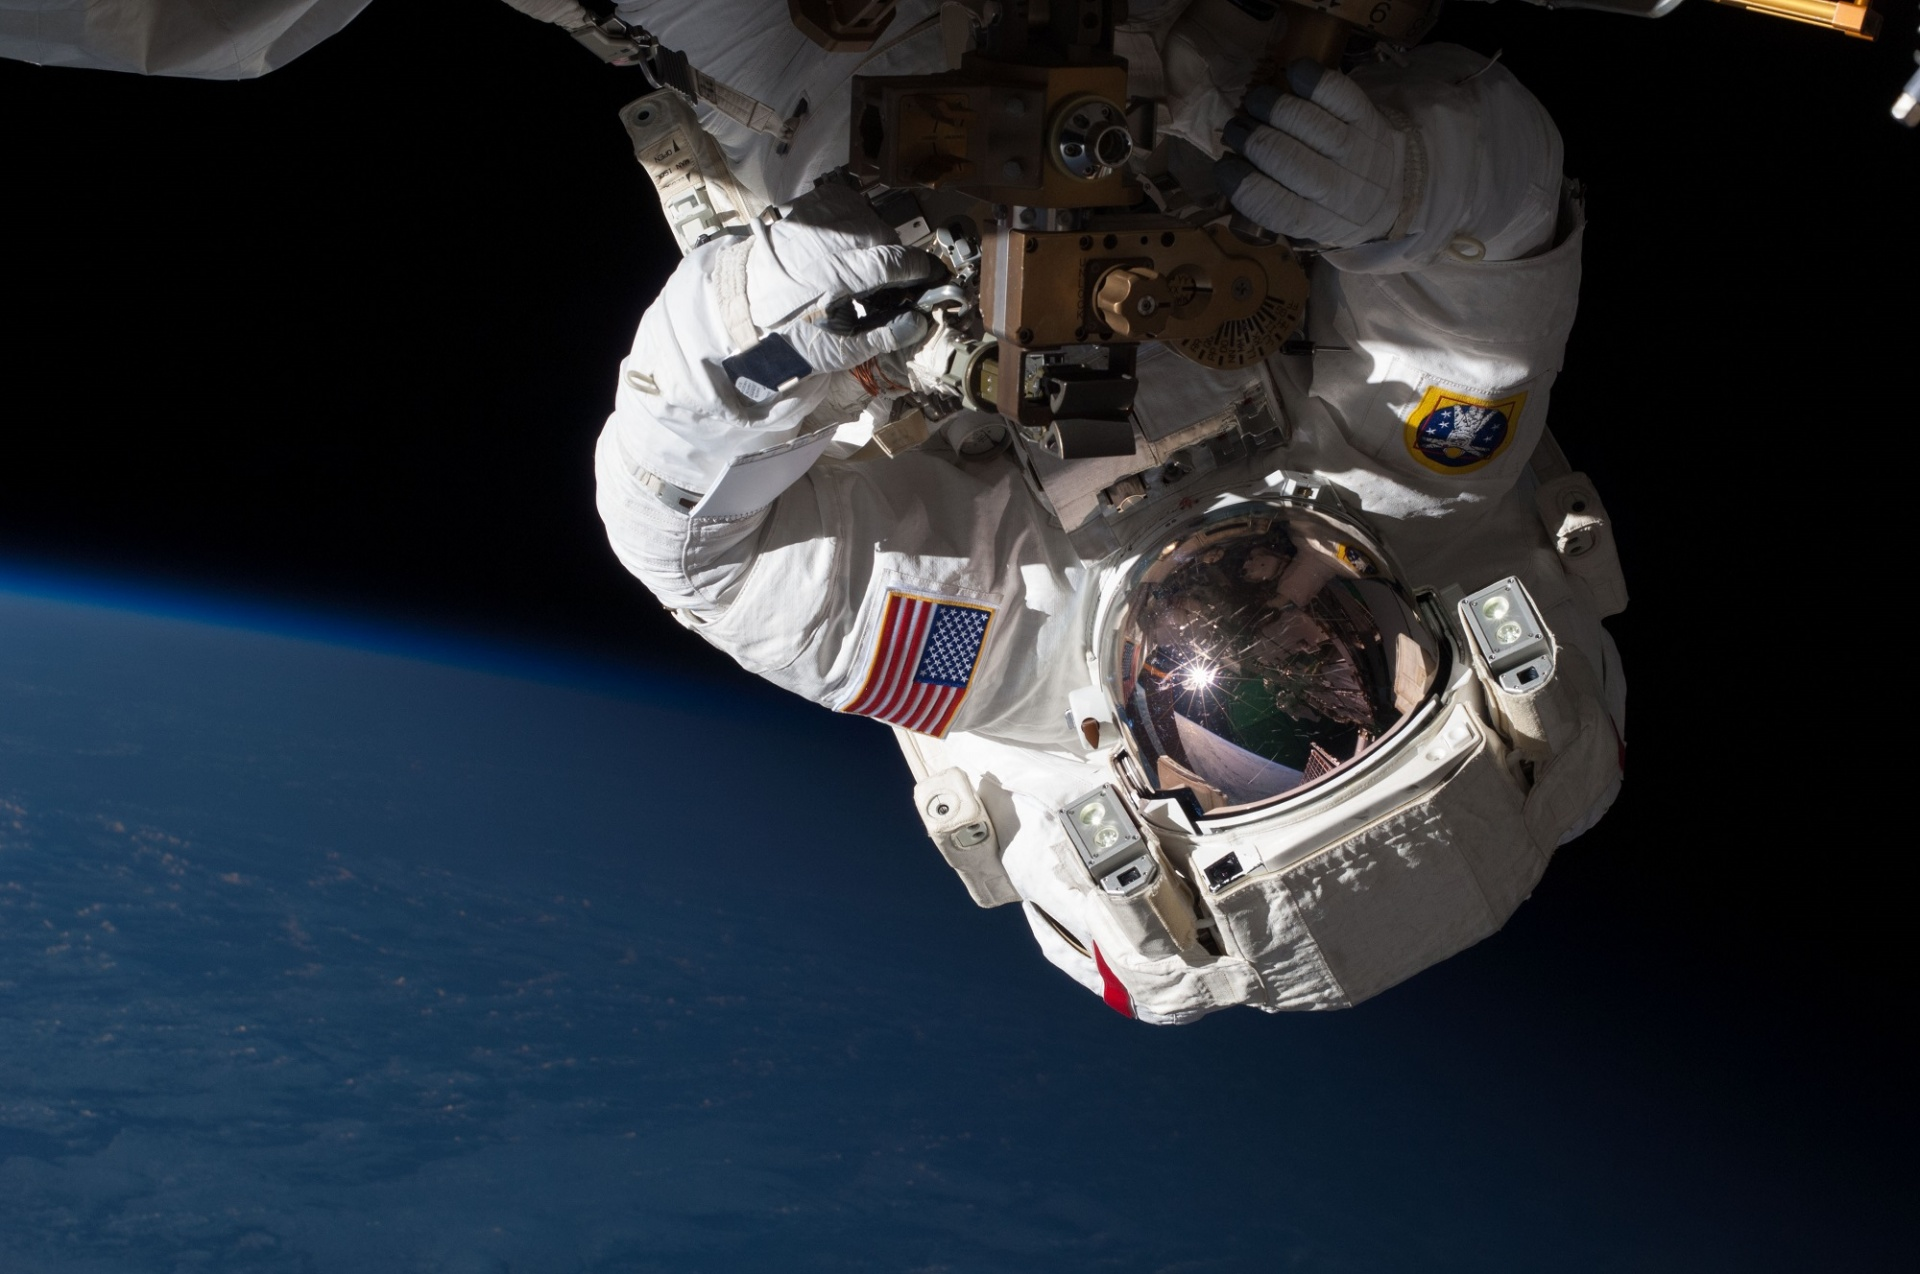 Astronaut Spacewalk Free Stock Photo - Public Domain Pictures